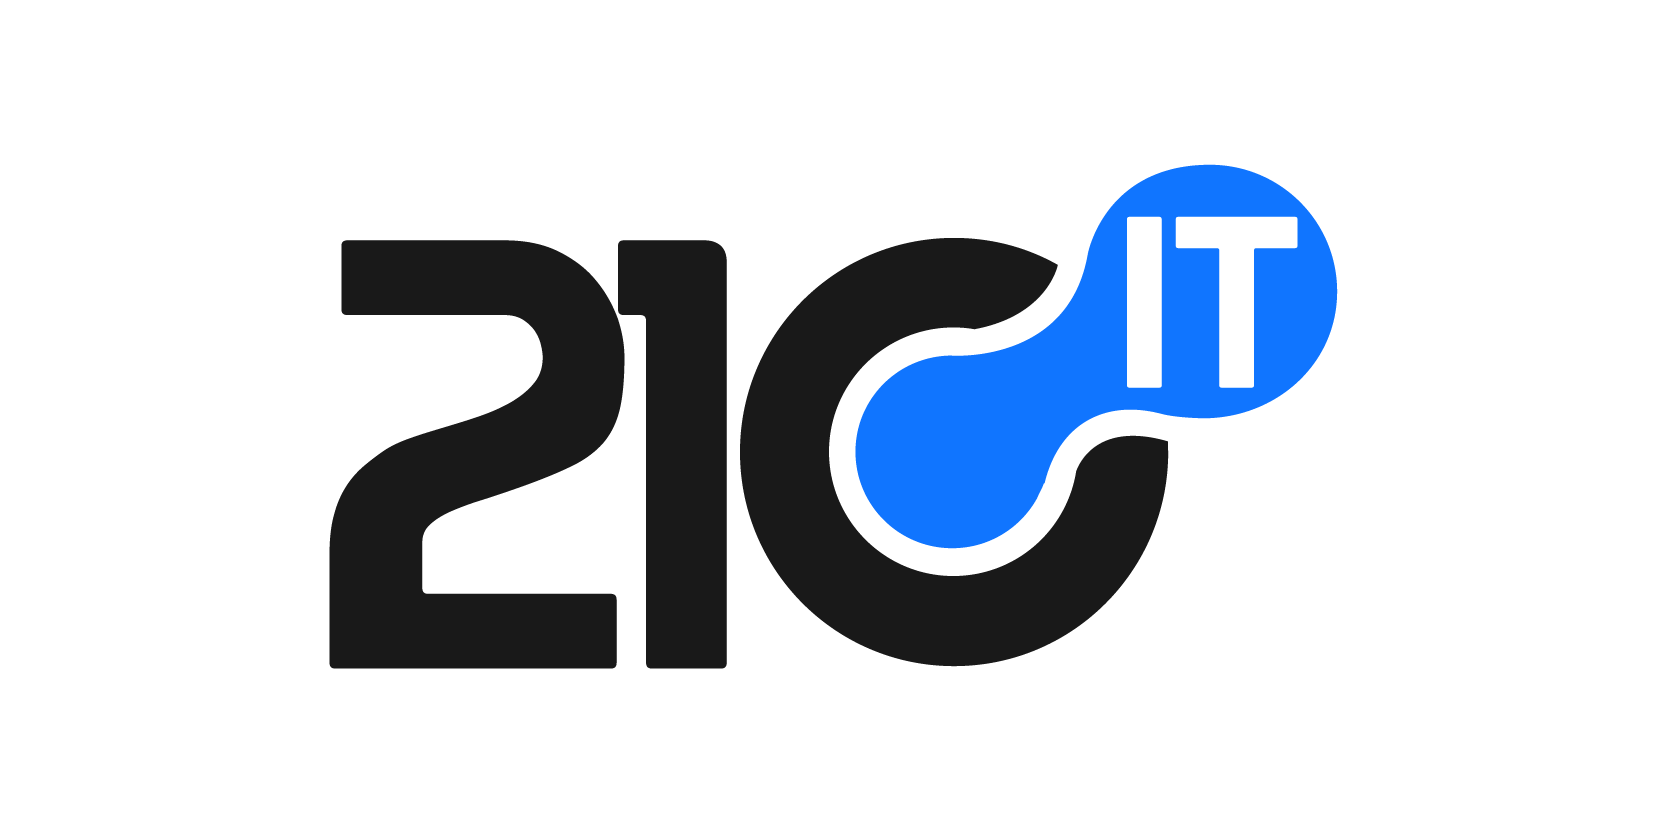 - 210 IT is the premiere managed service provider for the dental community in South Texas, specializing in dental PMS and x-ray systems, managed IT services, VoIP phones, complete office technology build-outs and more.